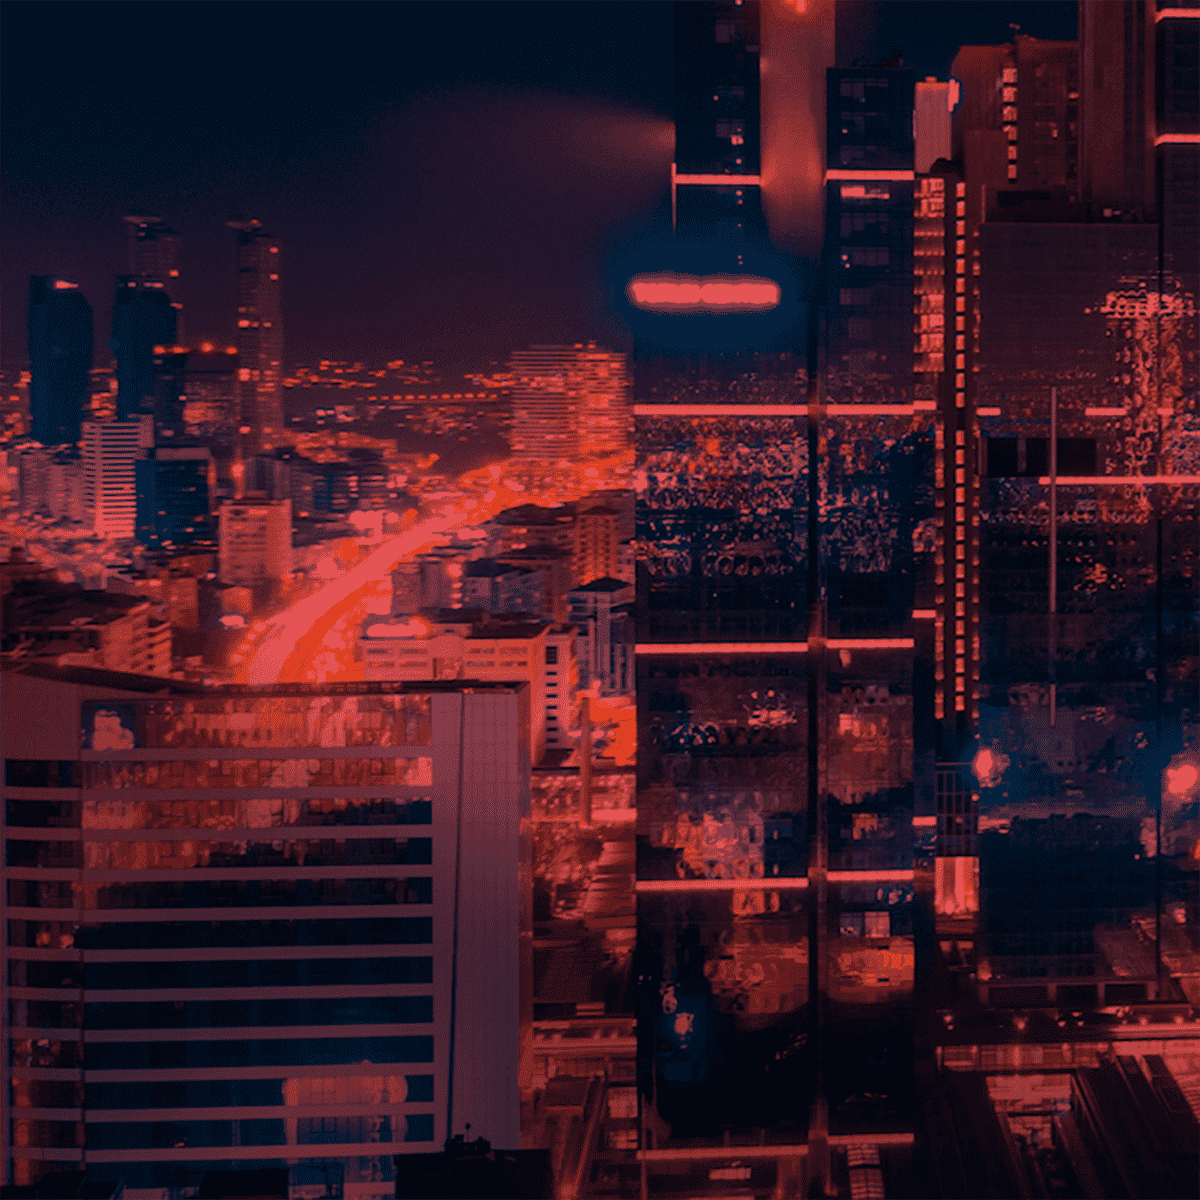 Picture showing skyscrapers in New York with red highlights. Taken from the Megadeals Factory Explainer video.